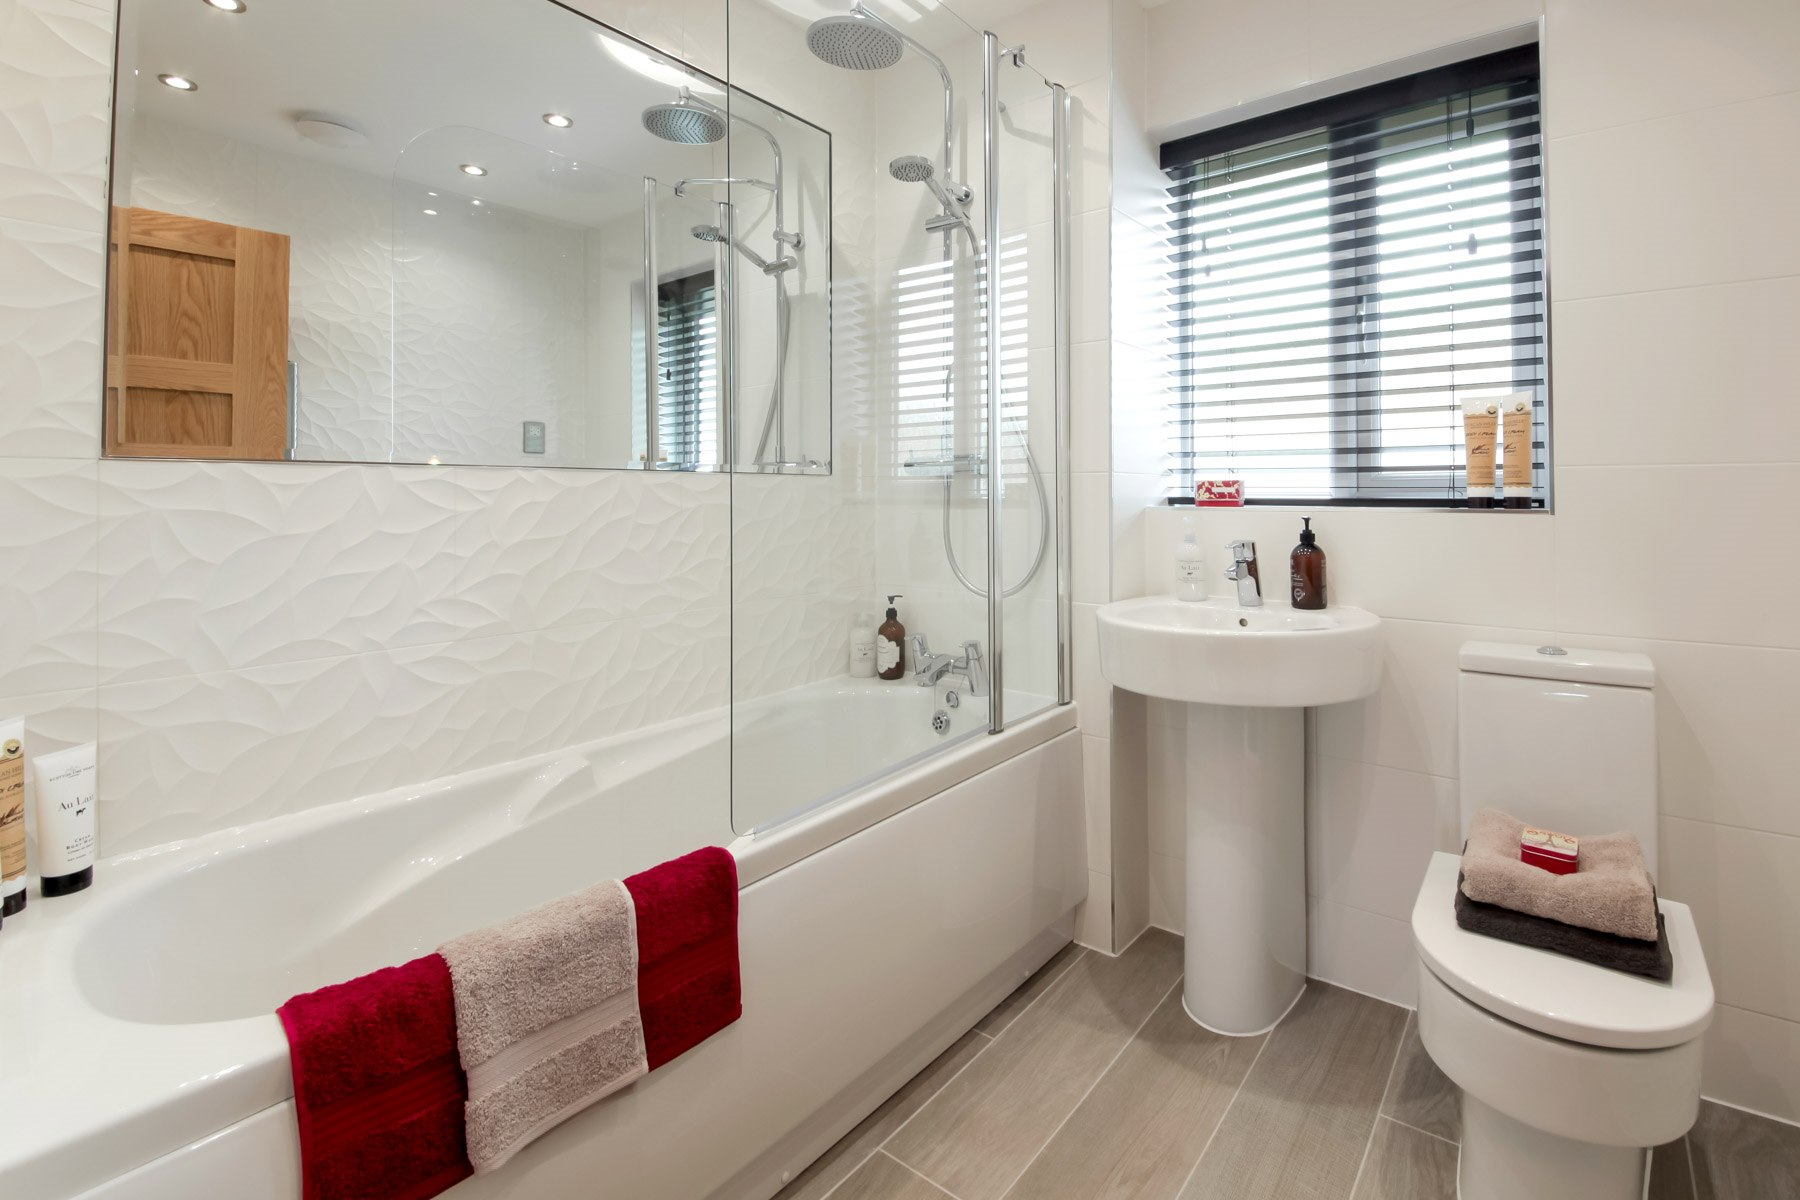 024_DMV_Chelford_Bathroom